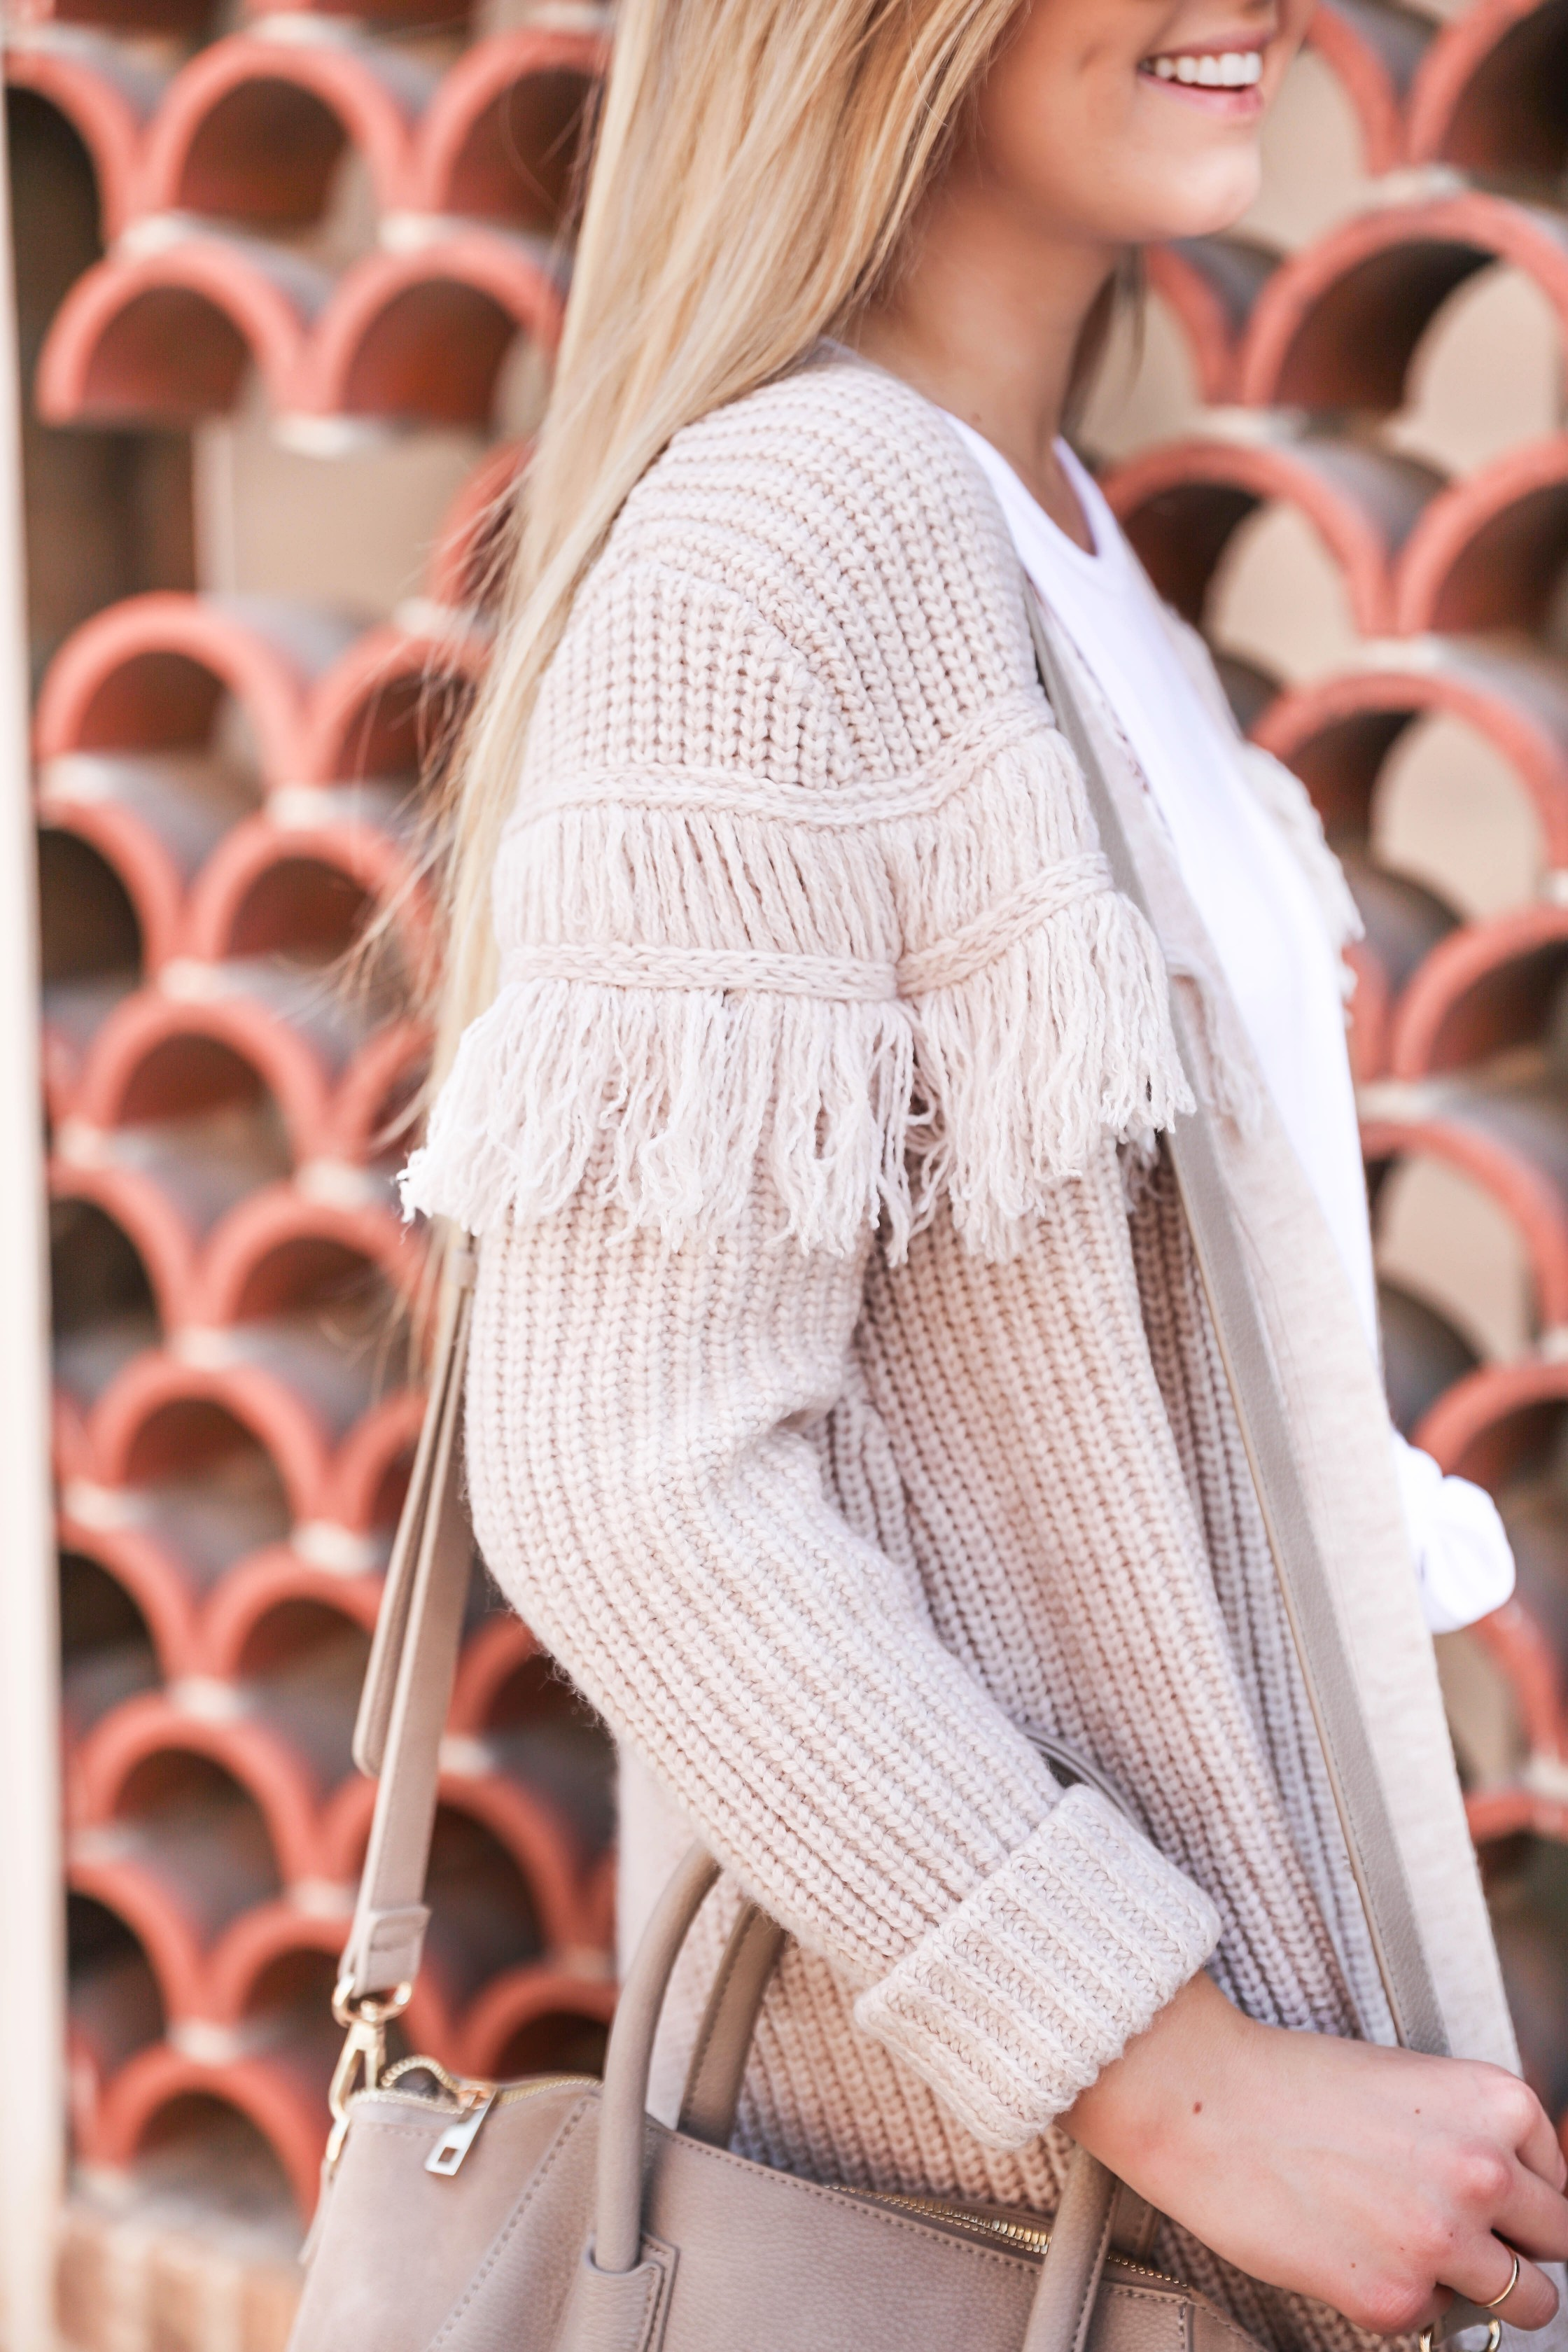 """Statement shoes for fall from Stage Stores! I can't stop buying shoes for this season, I am sharing this super cute all white look with these adorable Sam Edelman soludos flats that say """"queen bee!"""" Details on fashion blog daily dose of charm by lauren lindmark"""